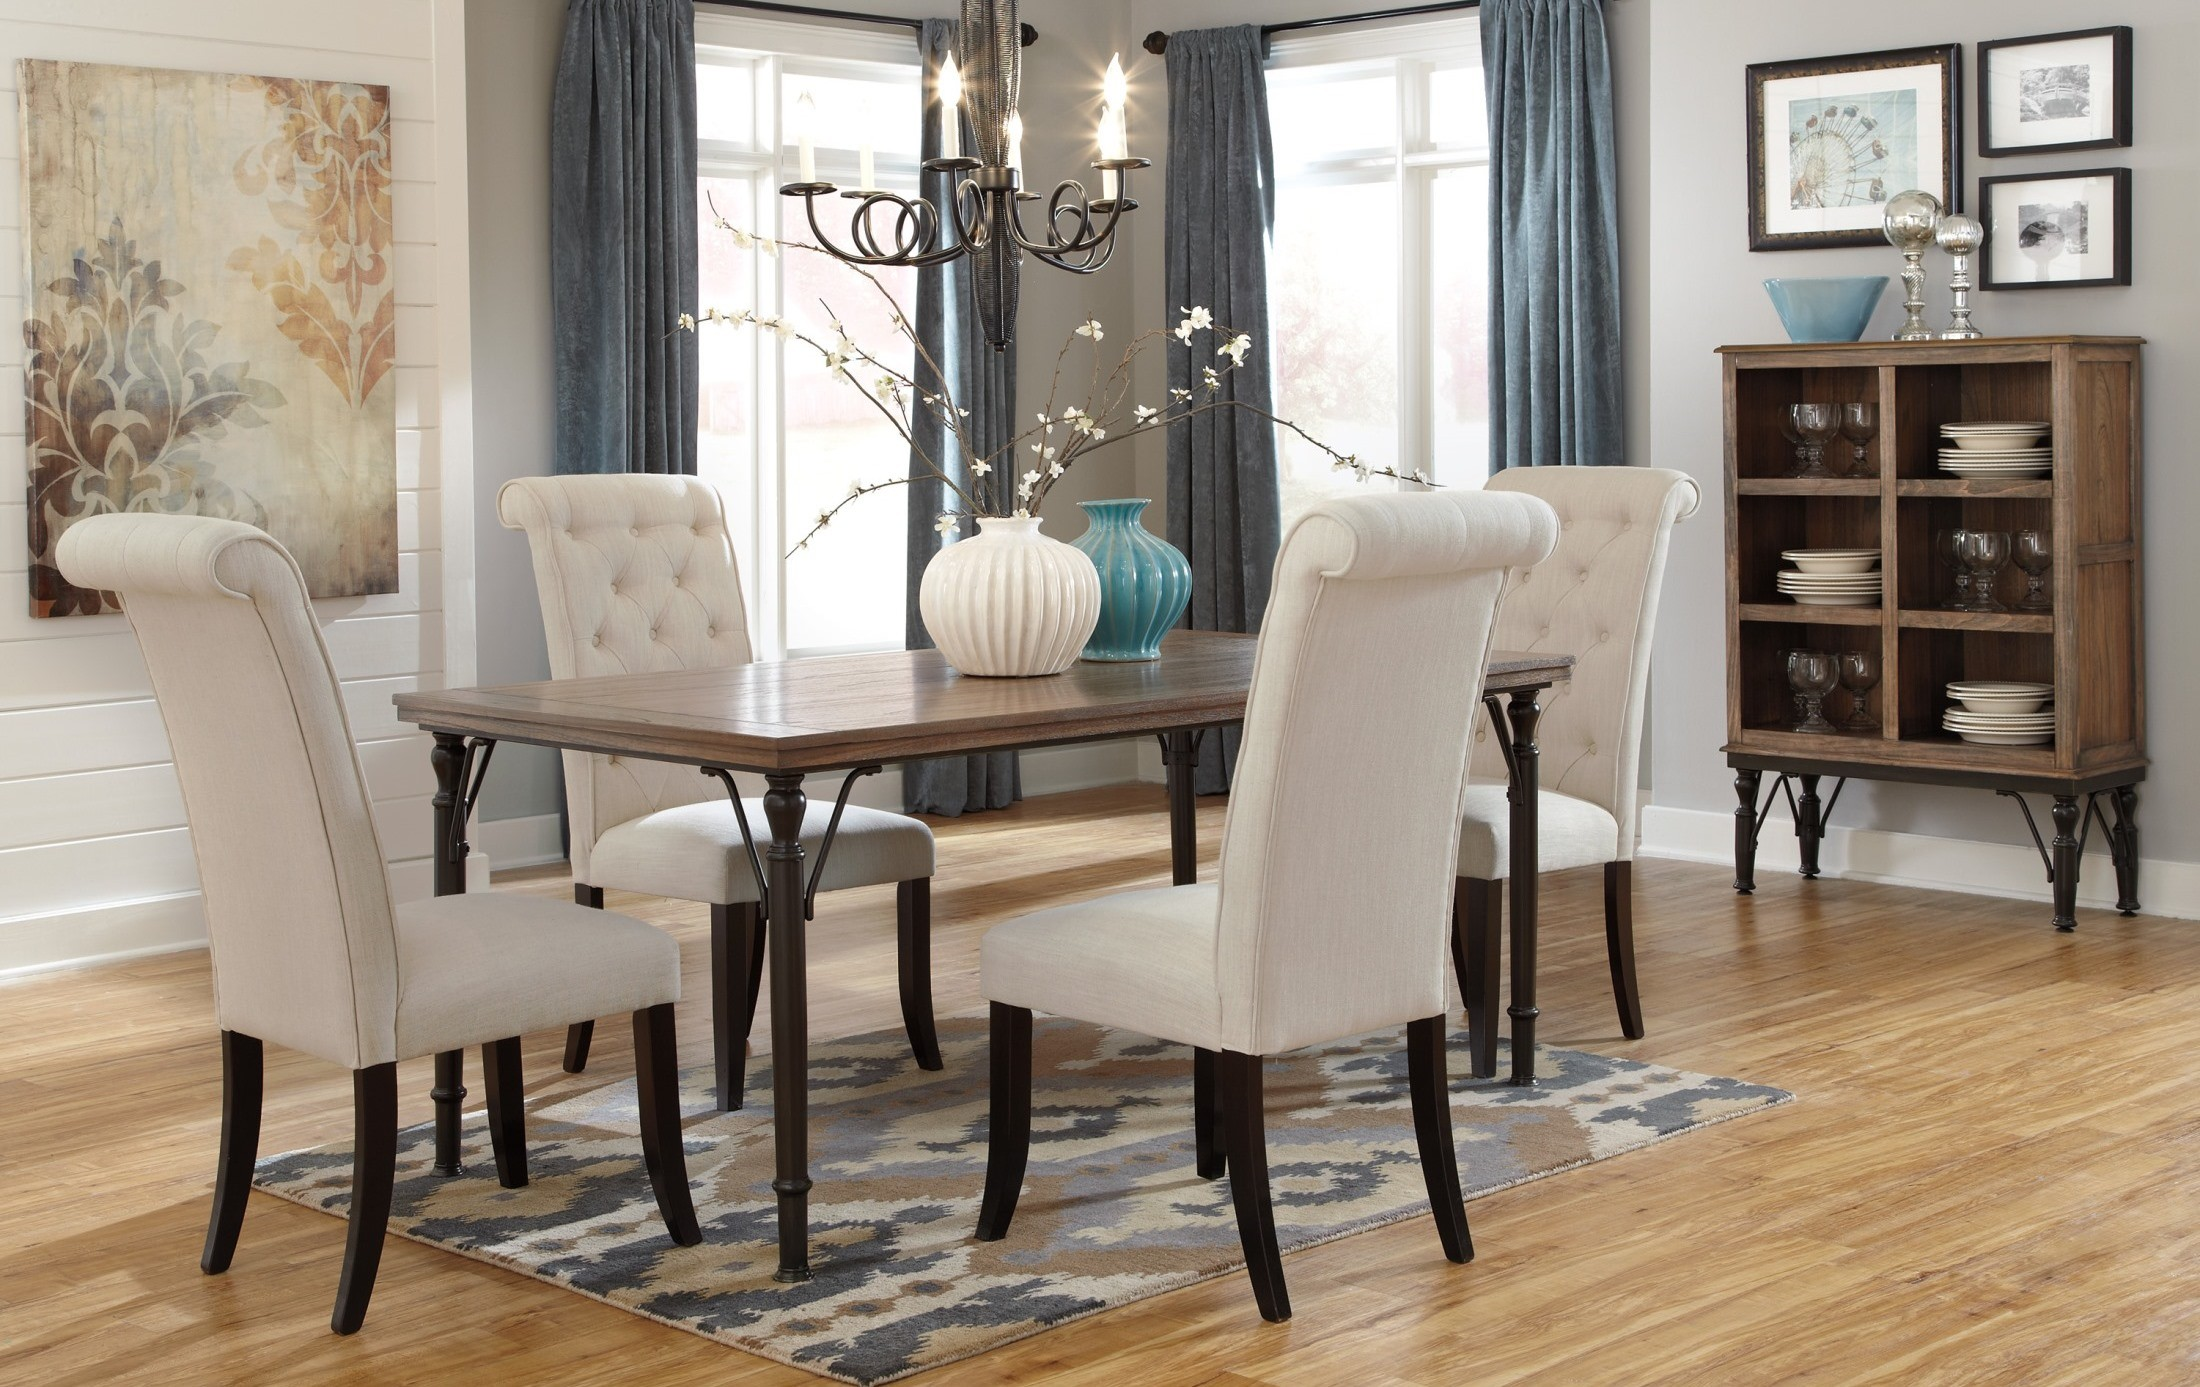 Tripton Rectangular Dining Room Set from Ashley D530 25  : d530 25 014 7612 from colemanfurniture.com size 2200 x 1387 jpeg 641kB